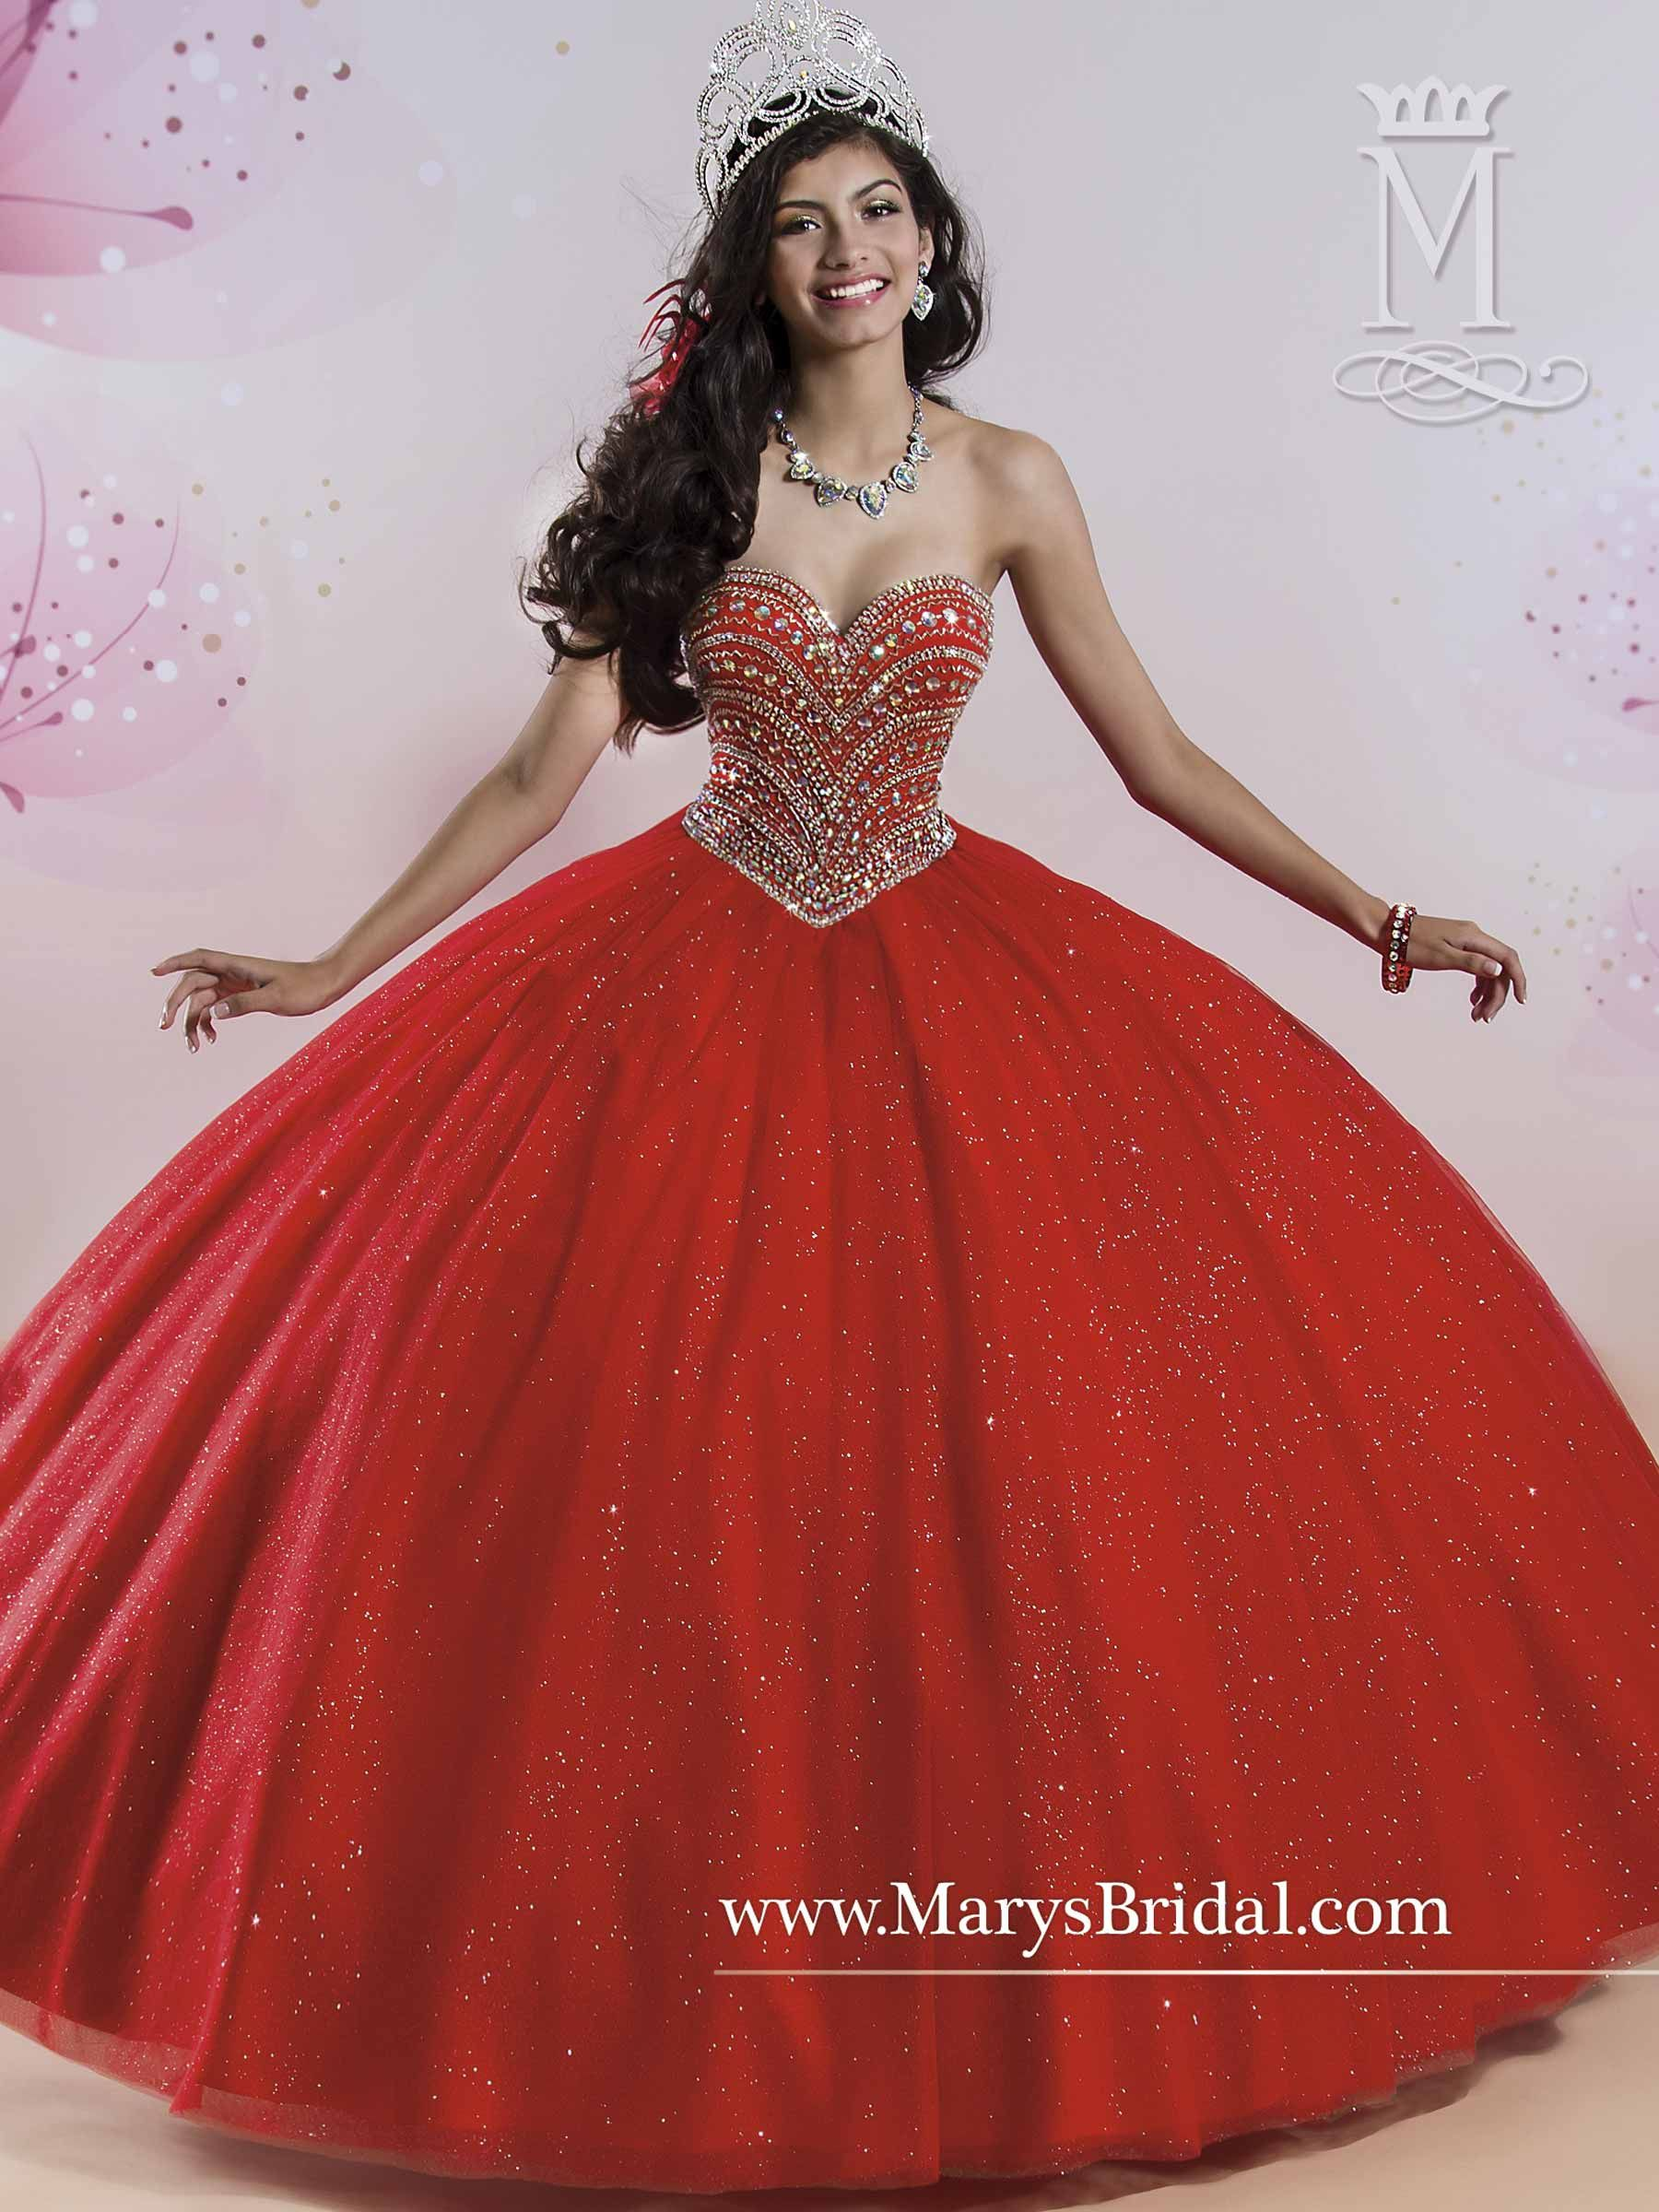 quincea era quinceanera princess pinterest rote abendkleider prinzessinnen und. Black Bedroom Furniture Sets. Home Design Ideas